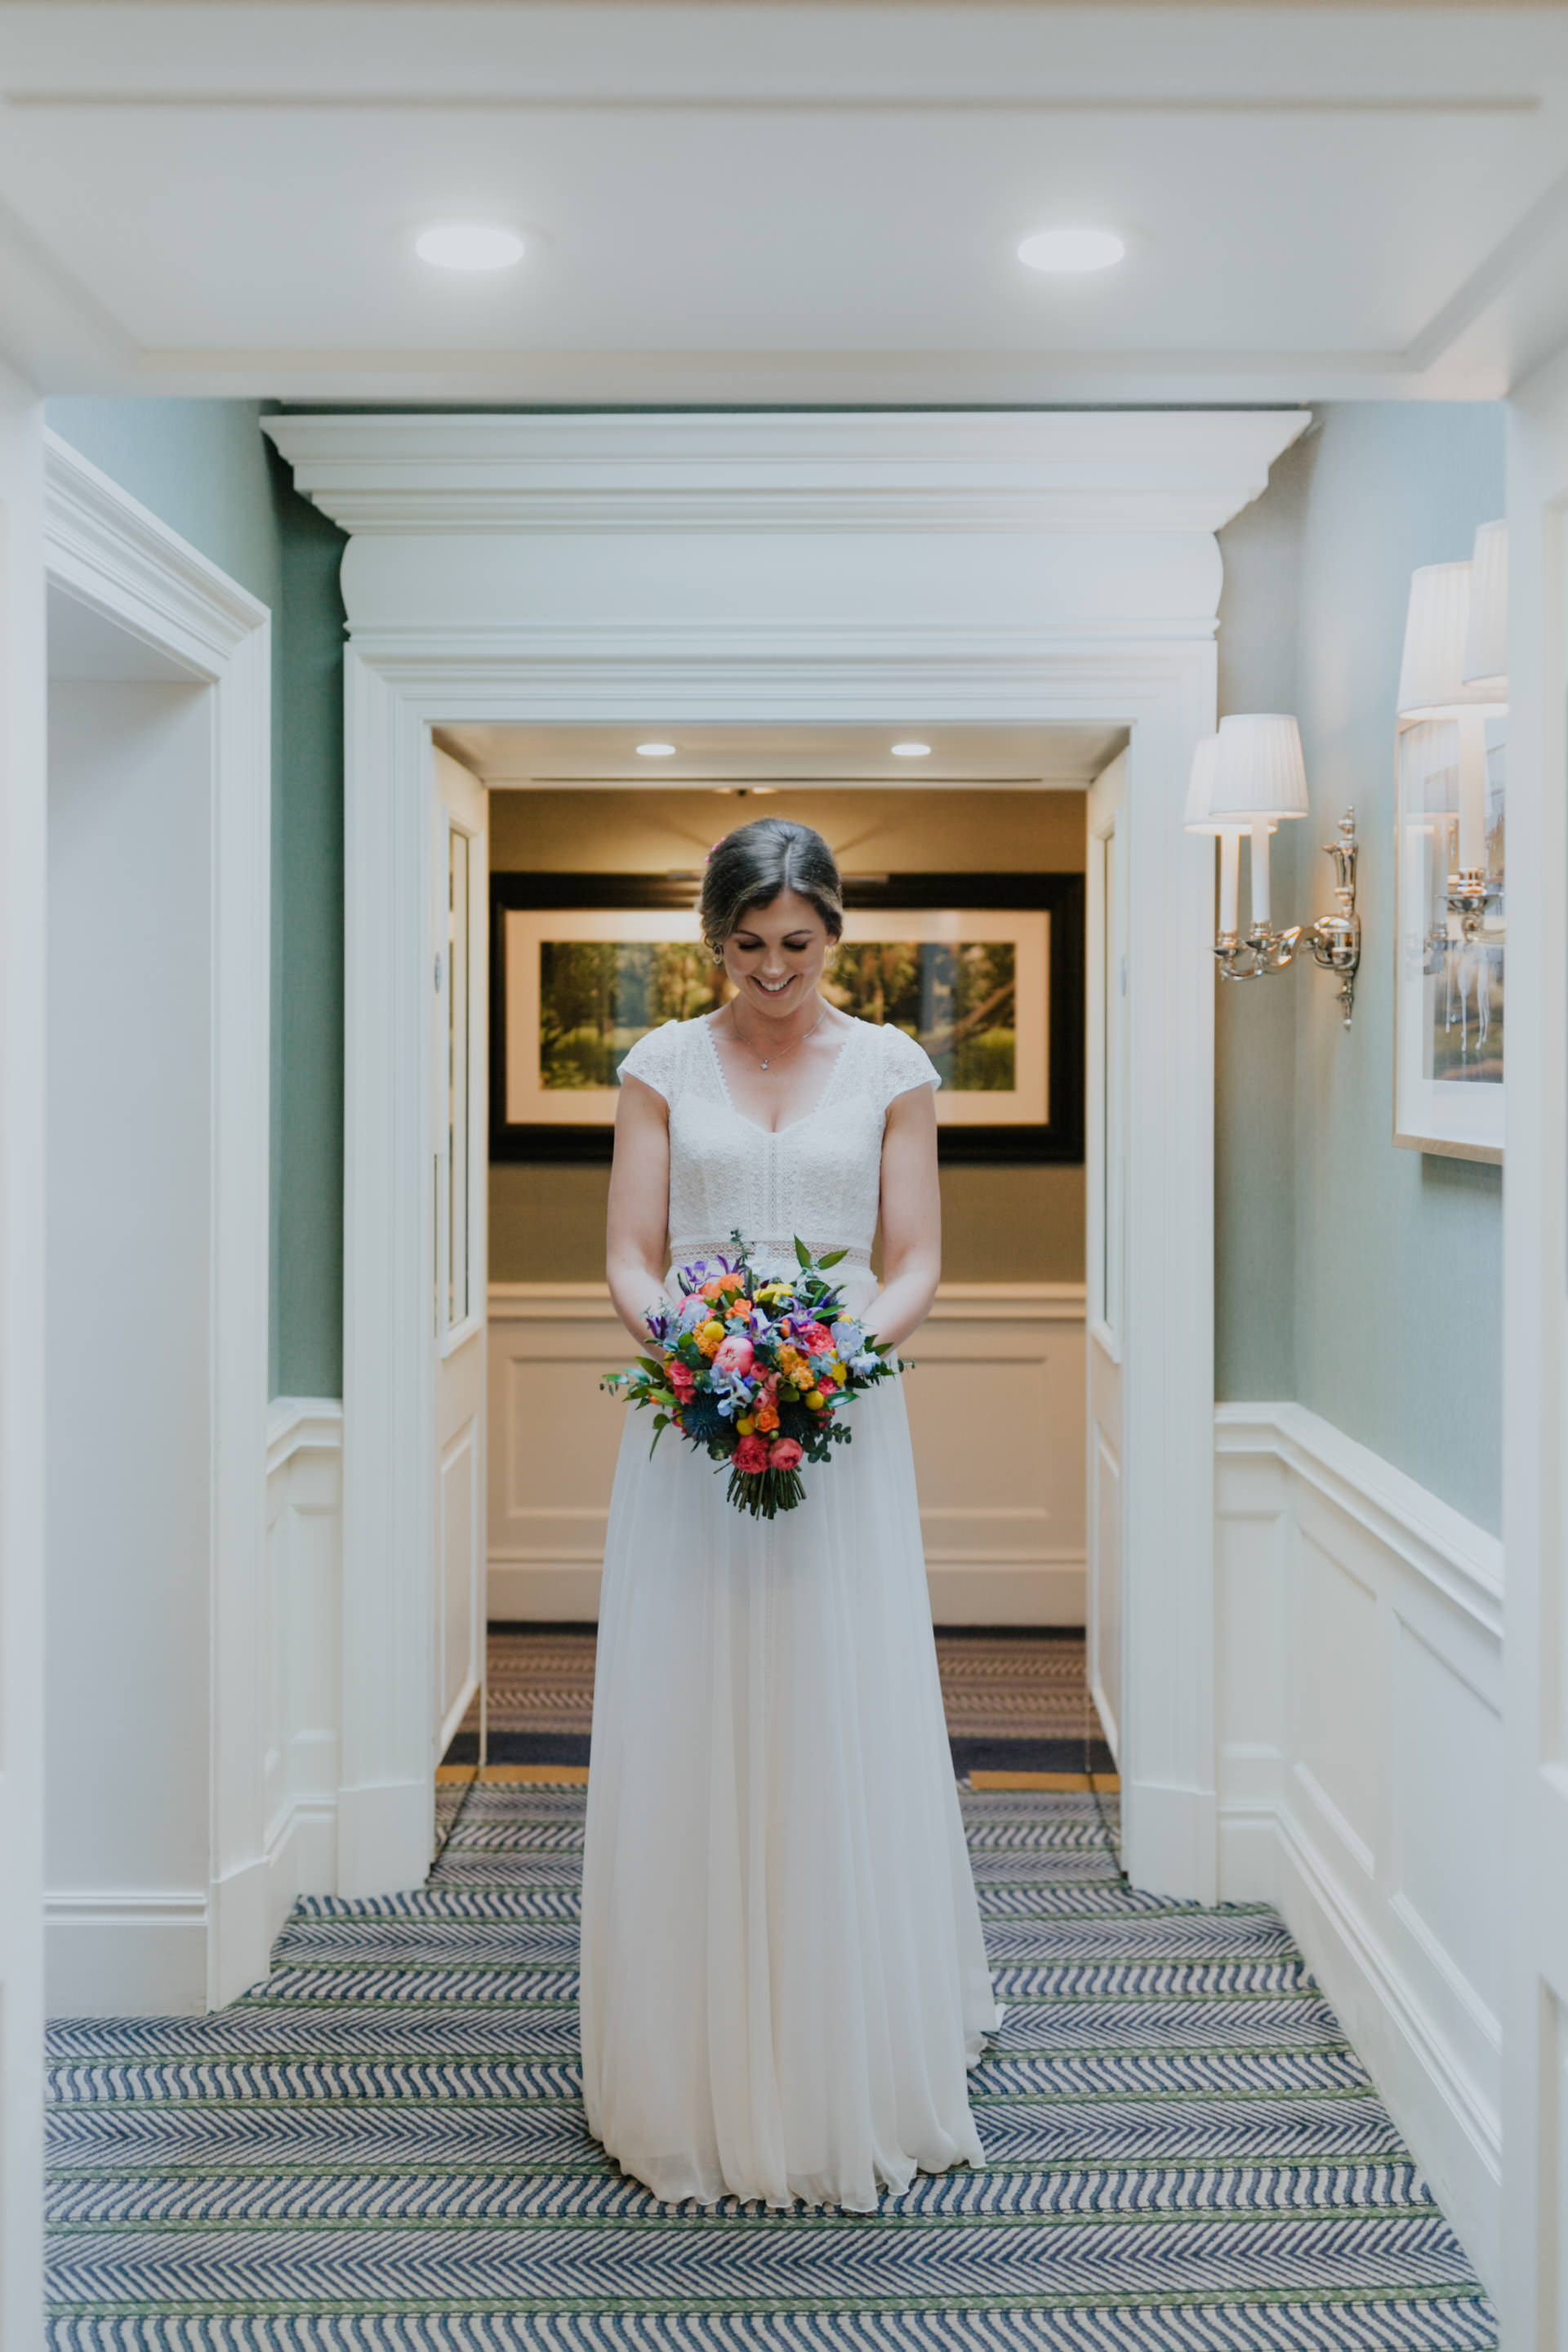 s&r_the_shelbourne_hotel_wedding_photographer_livia_figueiredo_4.jpg